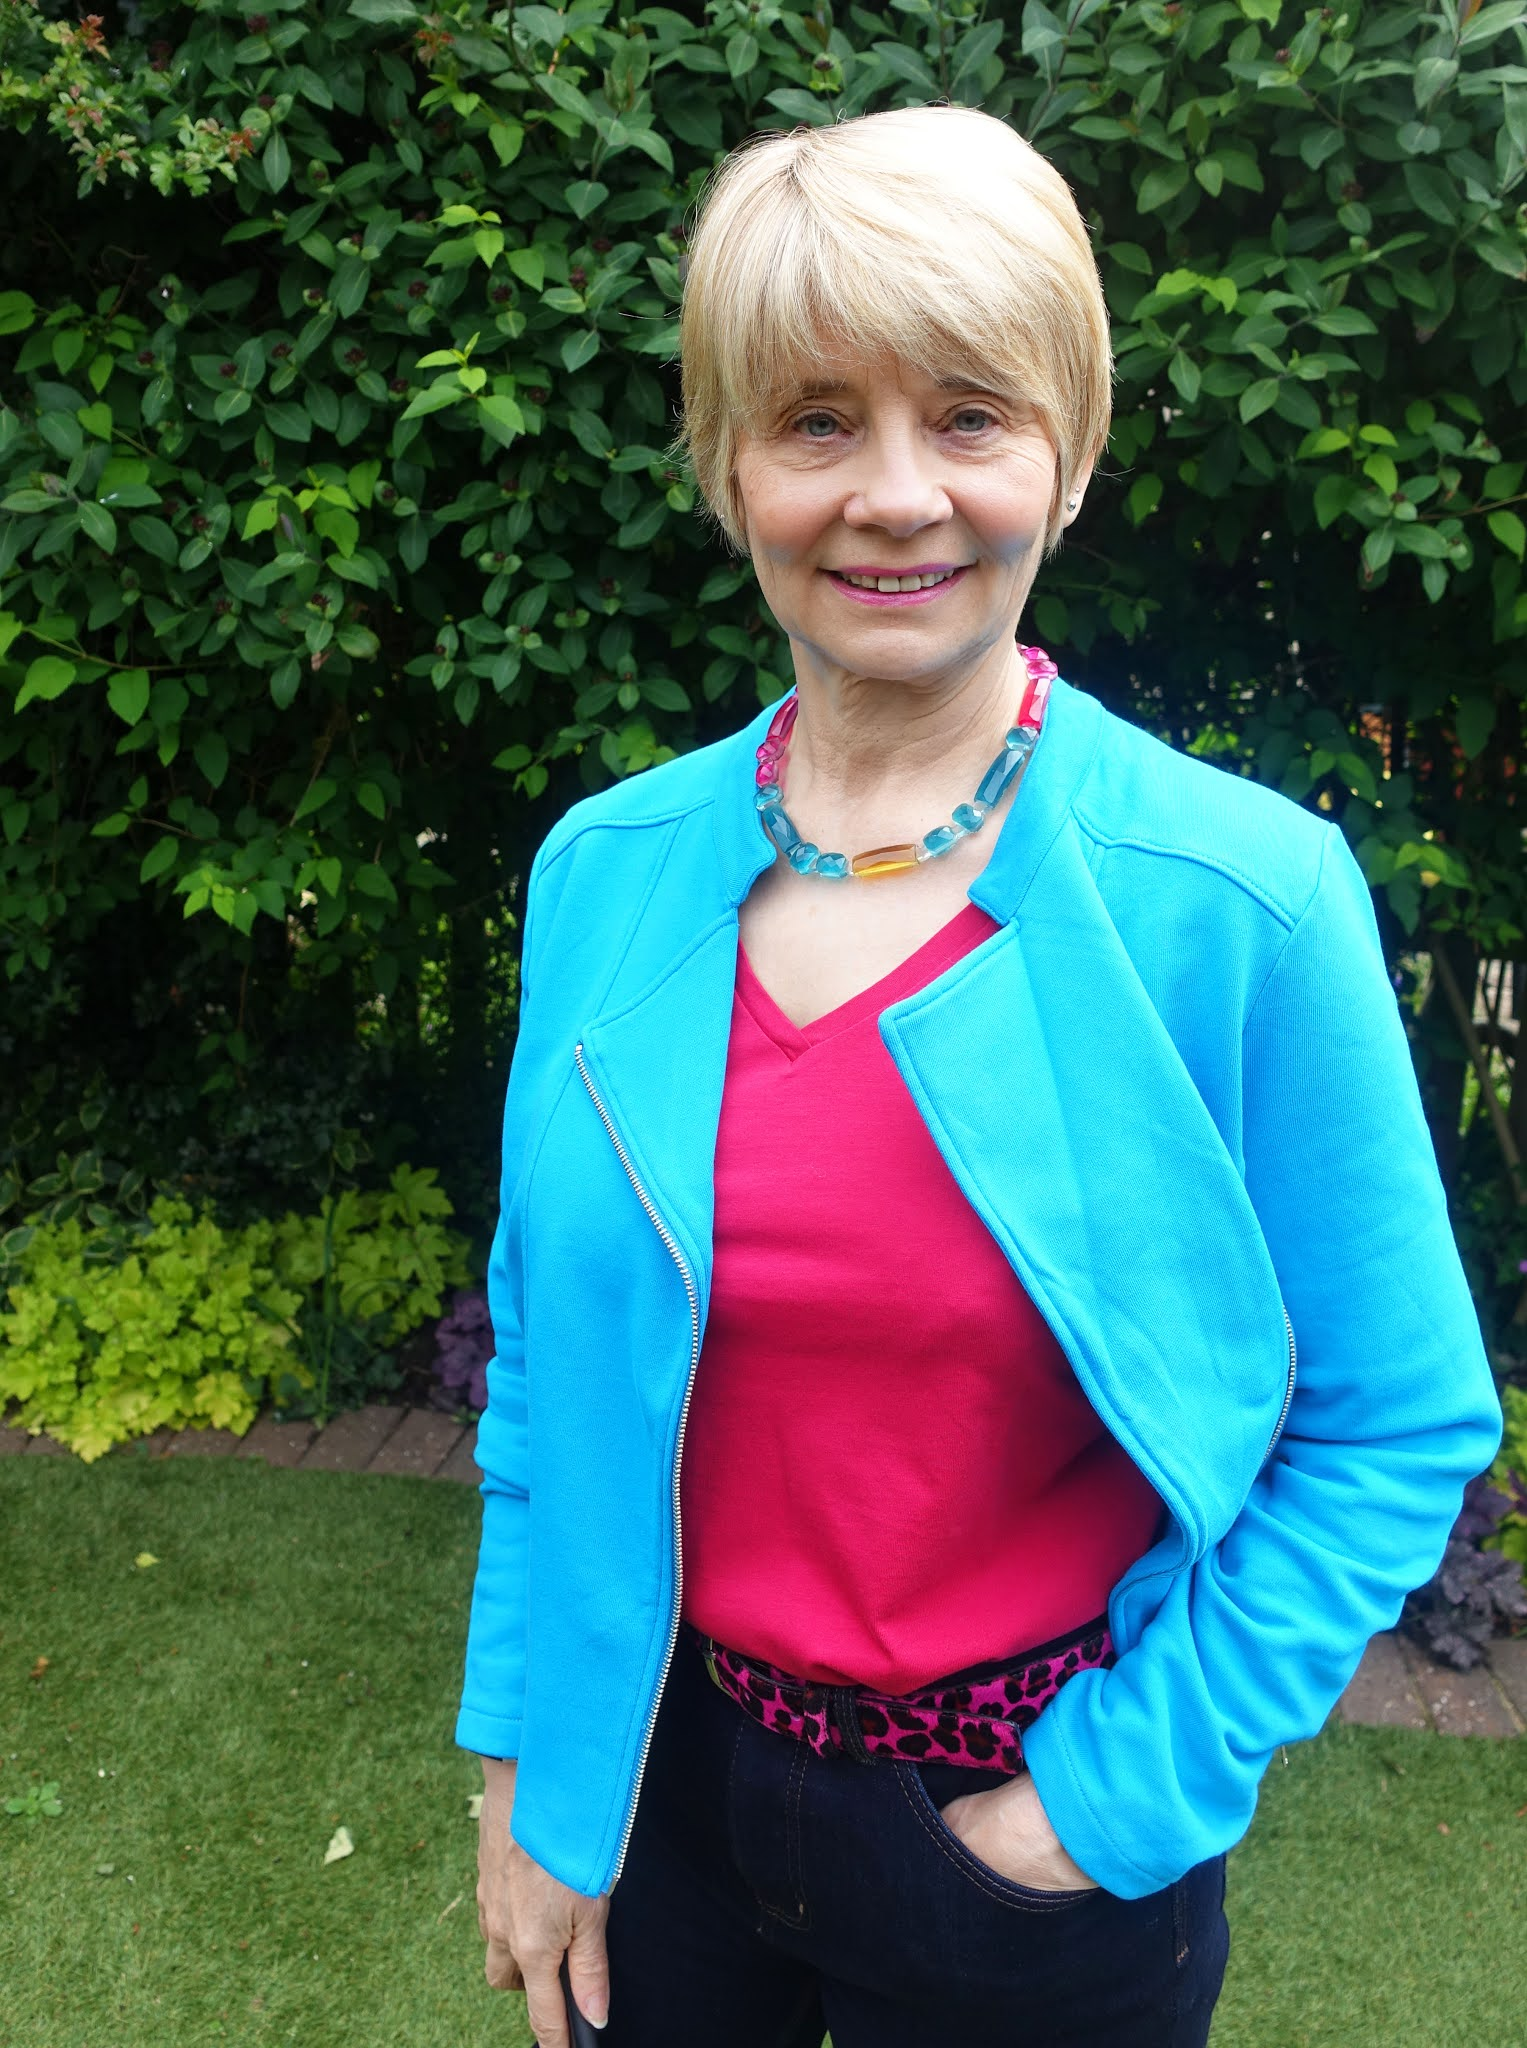 Gail Hanlon from Is This Mutton the over 50s style blog in Blue Jewel jacket and sangria t-shirt from Kettlewell Colours